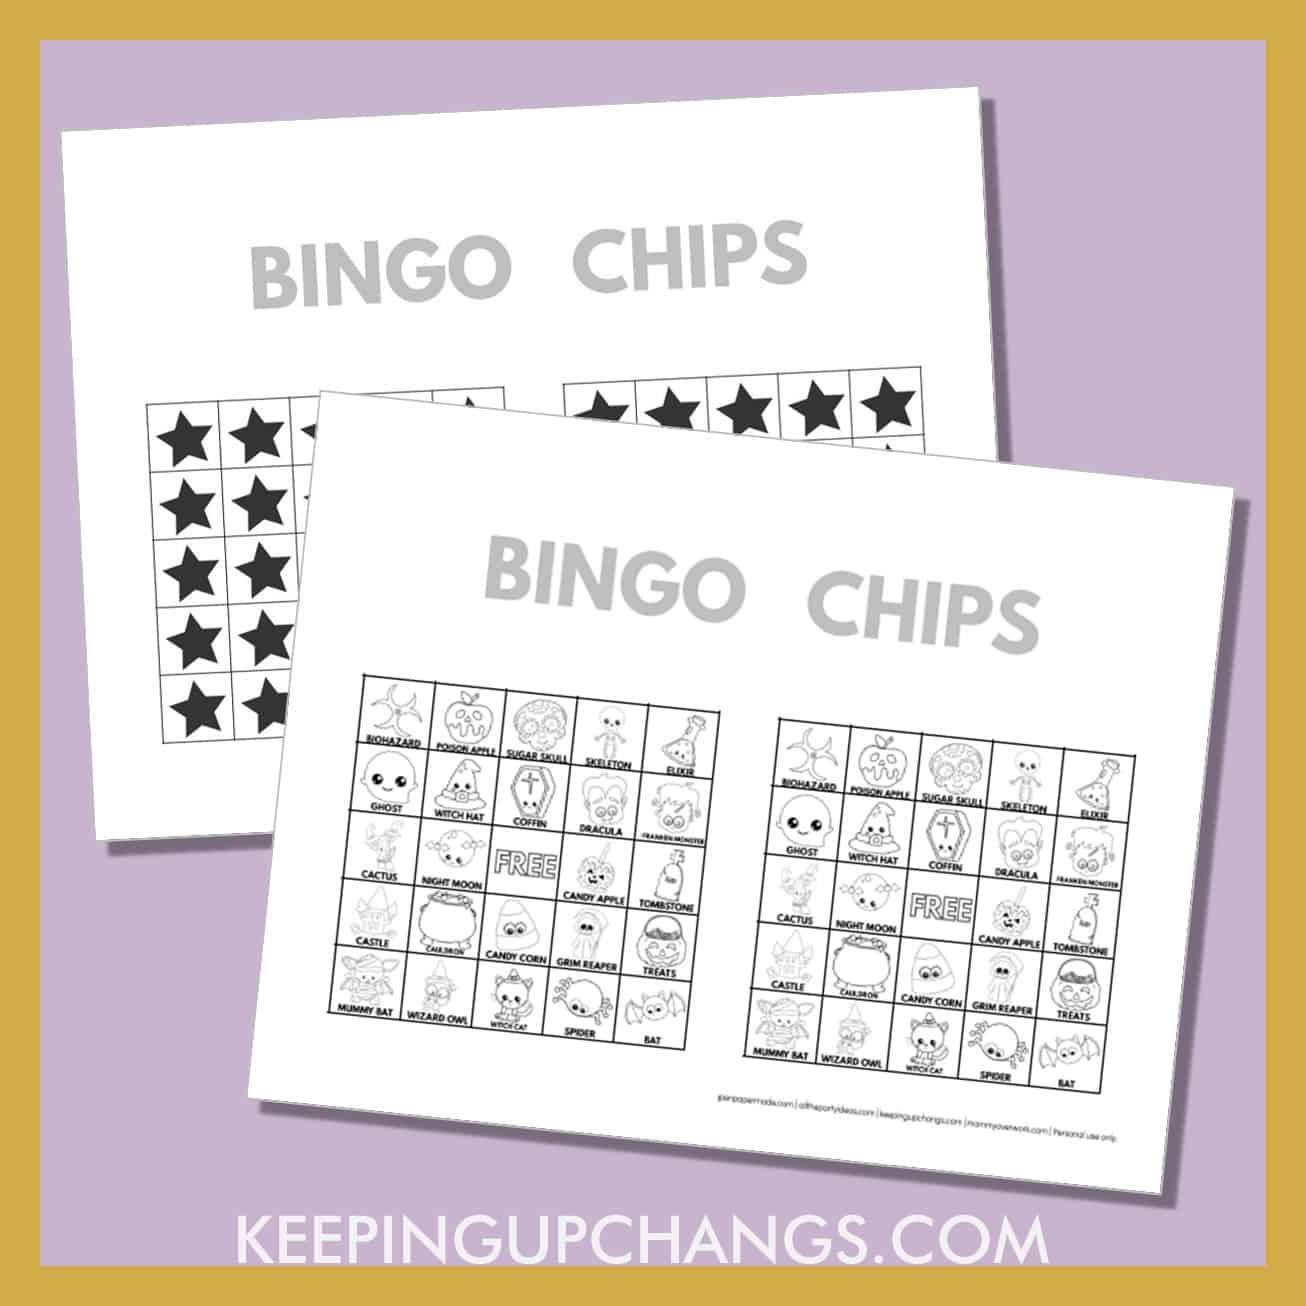 free fall halloween bingo card 5x5 black white coloring game chips, tokens, markers.